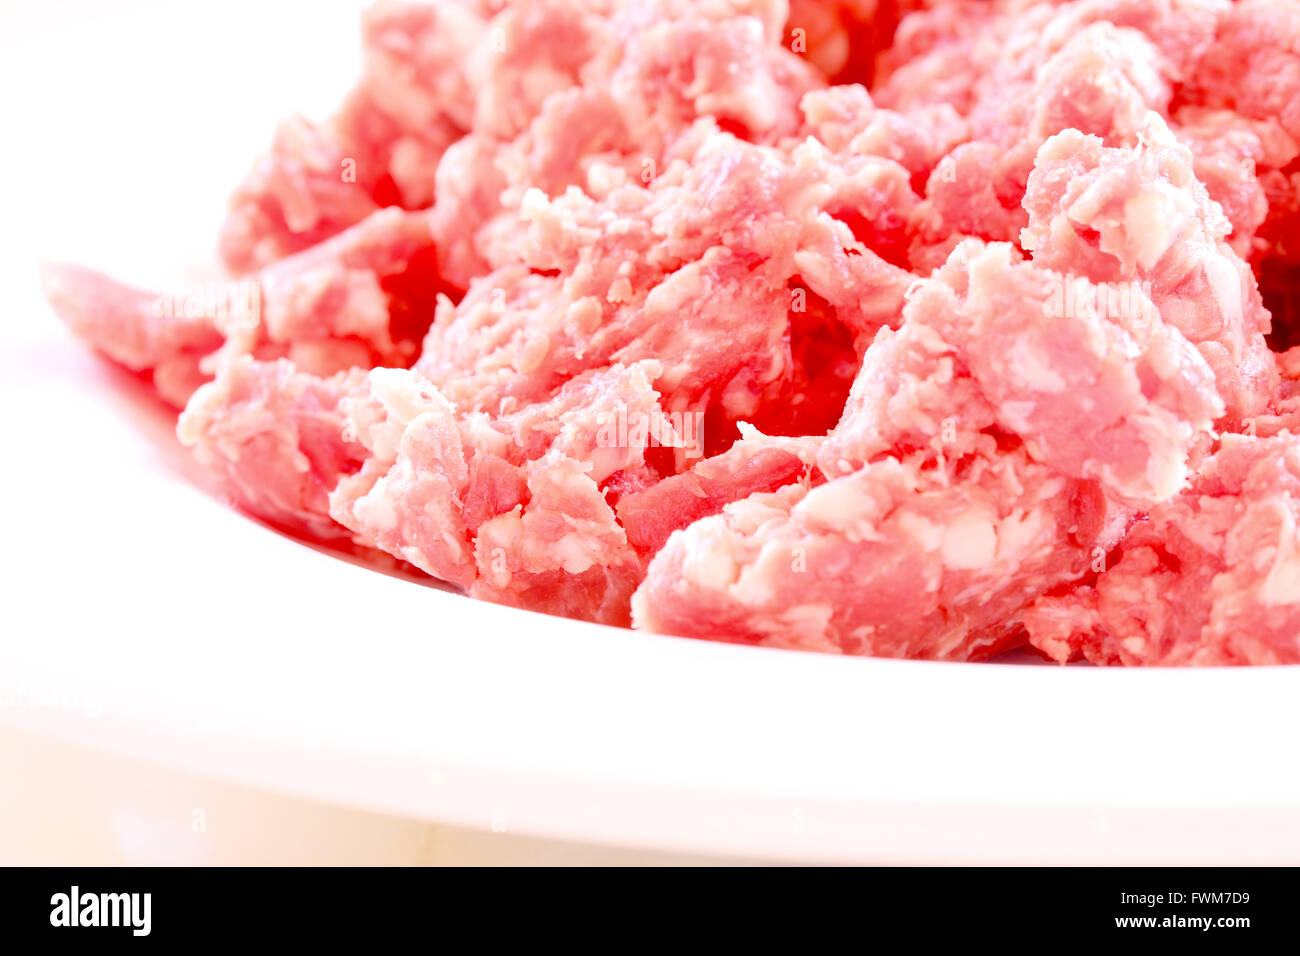 Beef mince on a plate. - Stock Image